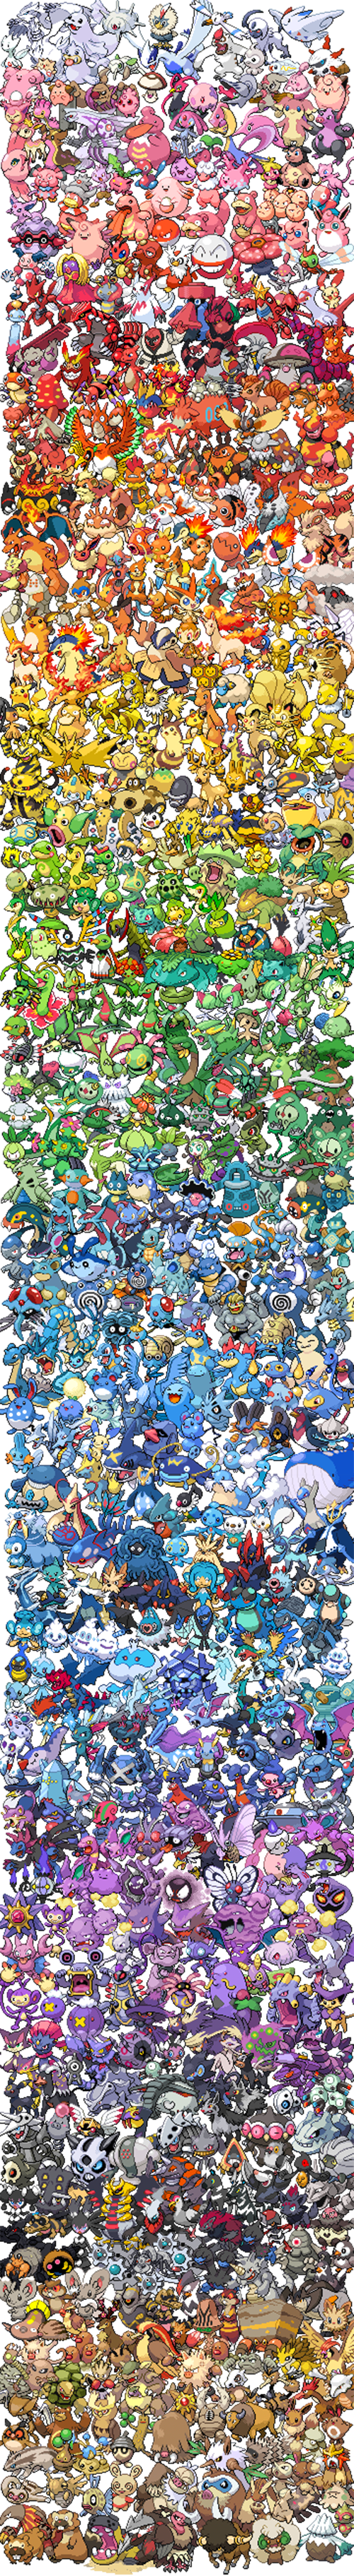 Pokémon,colors